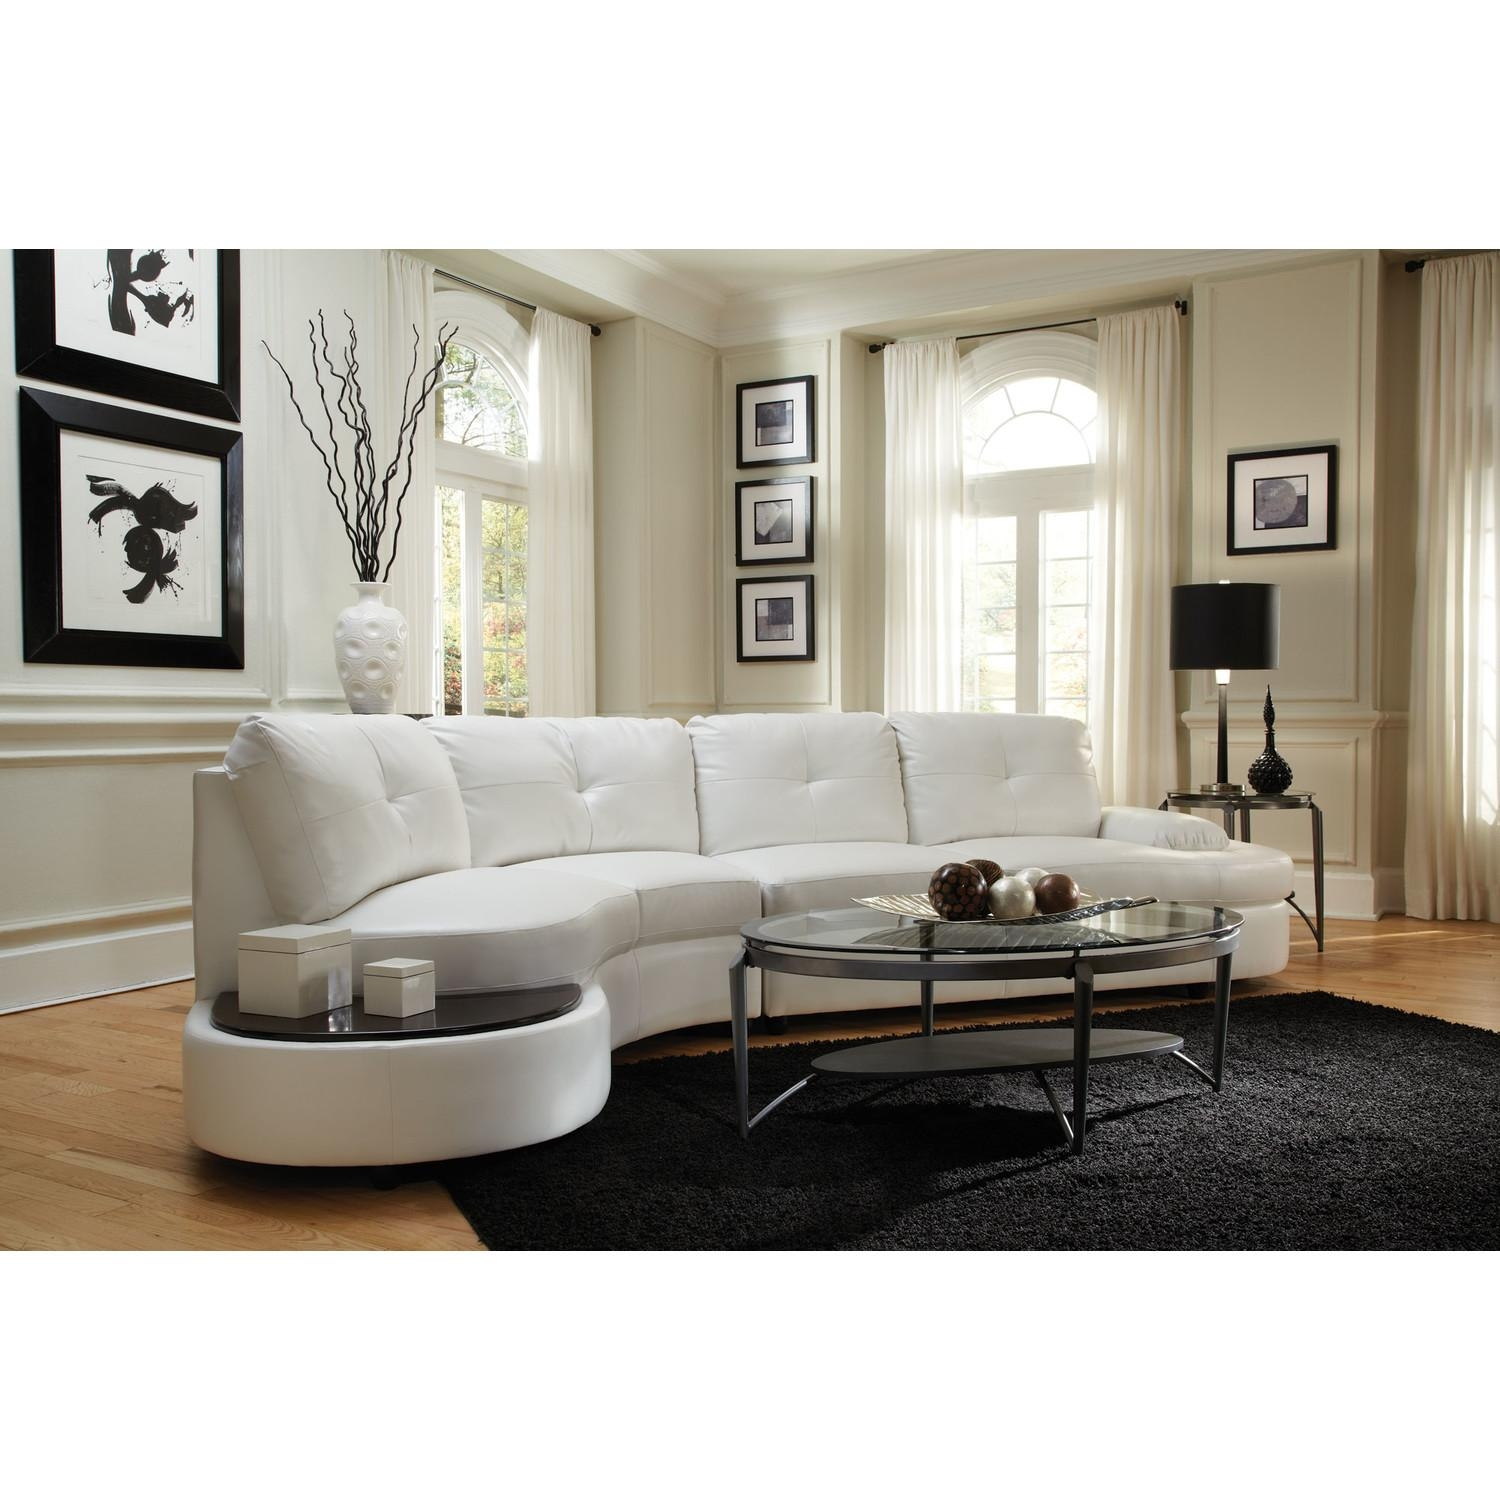 Interior: Admirable Oversized Sectional Sofas With Oversized Intended For Window Sofas (View 6 of 20)